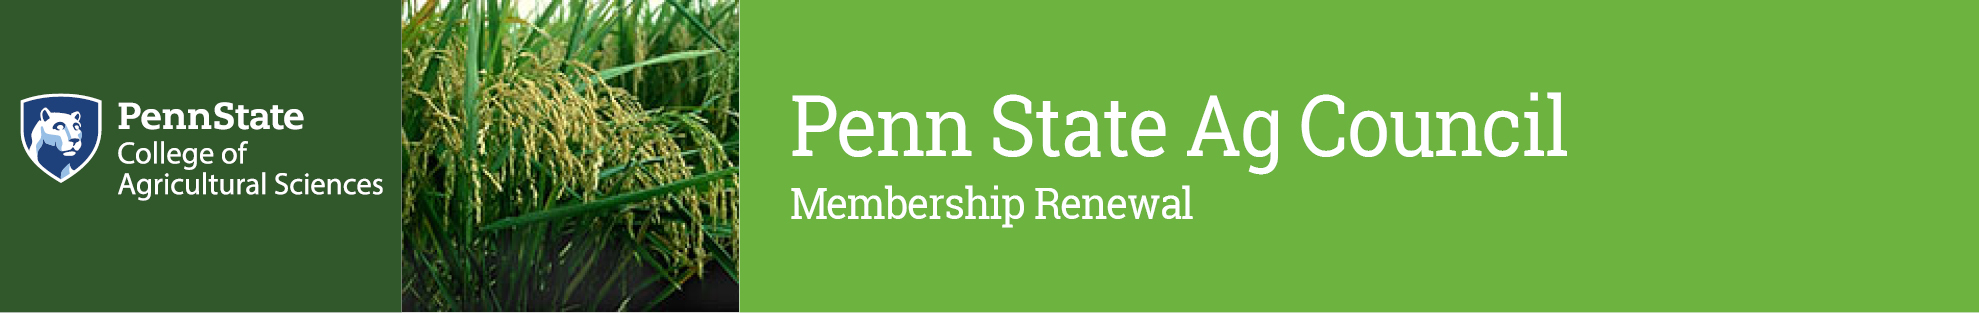 Penn State Ag Council - 2017 Membership Renewal